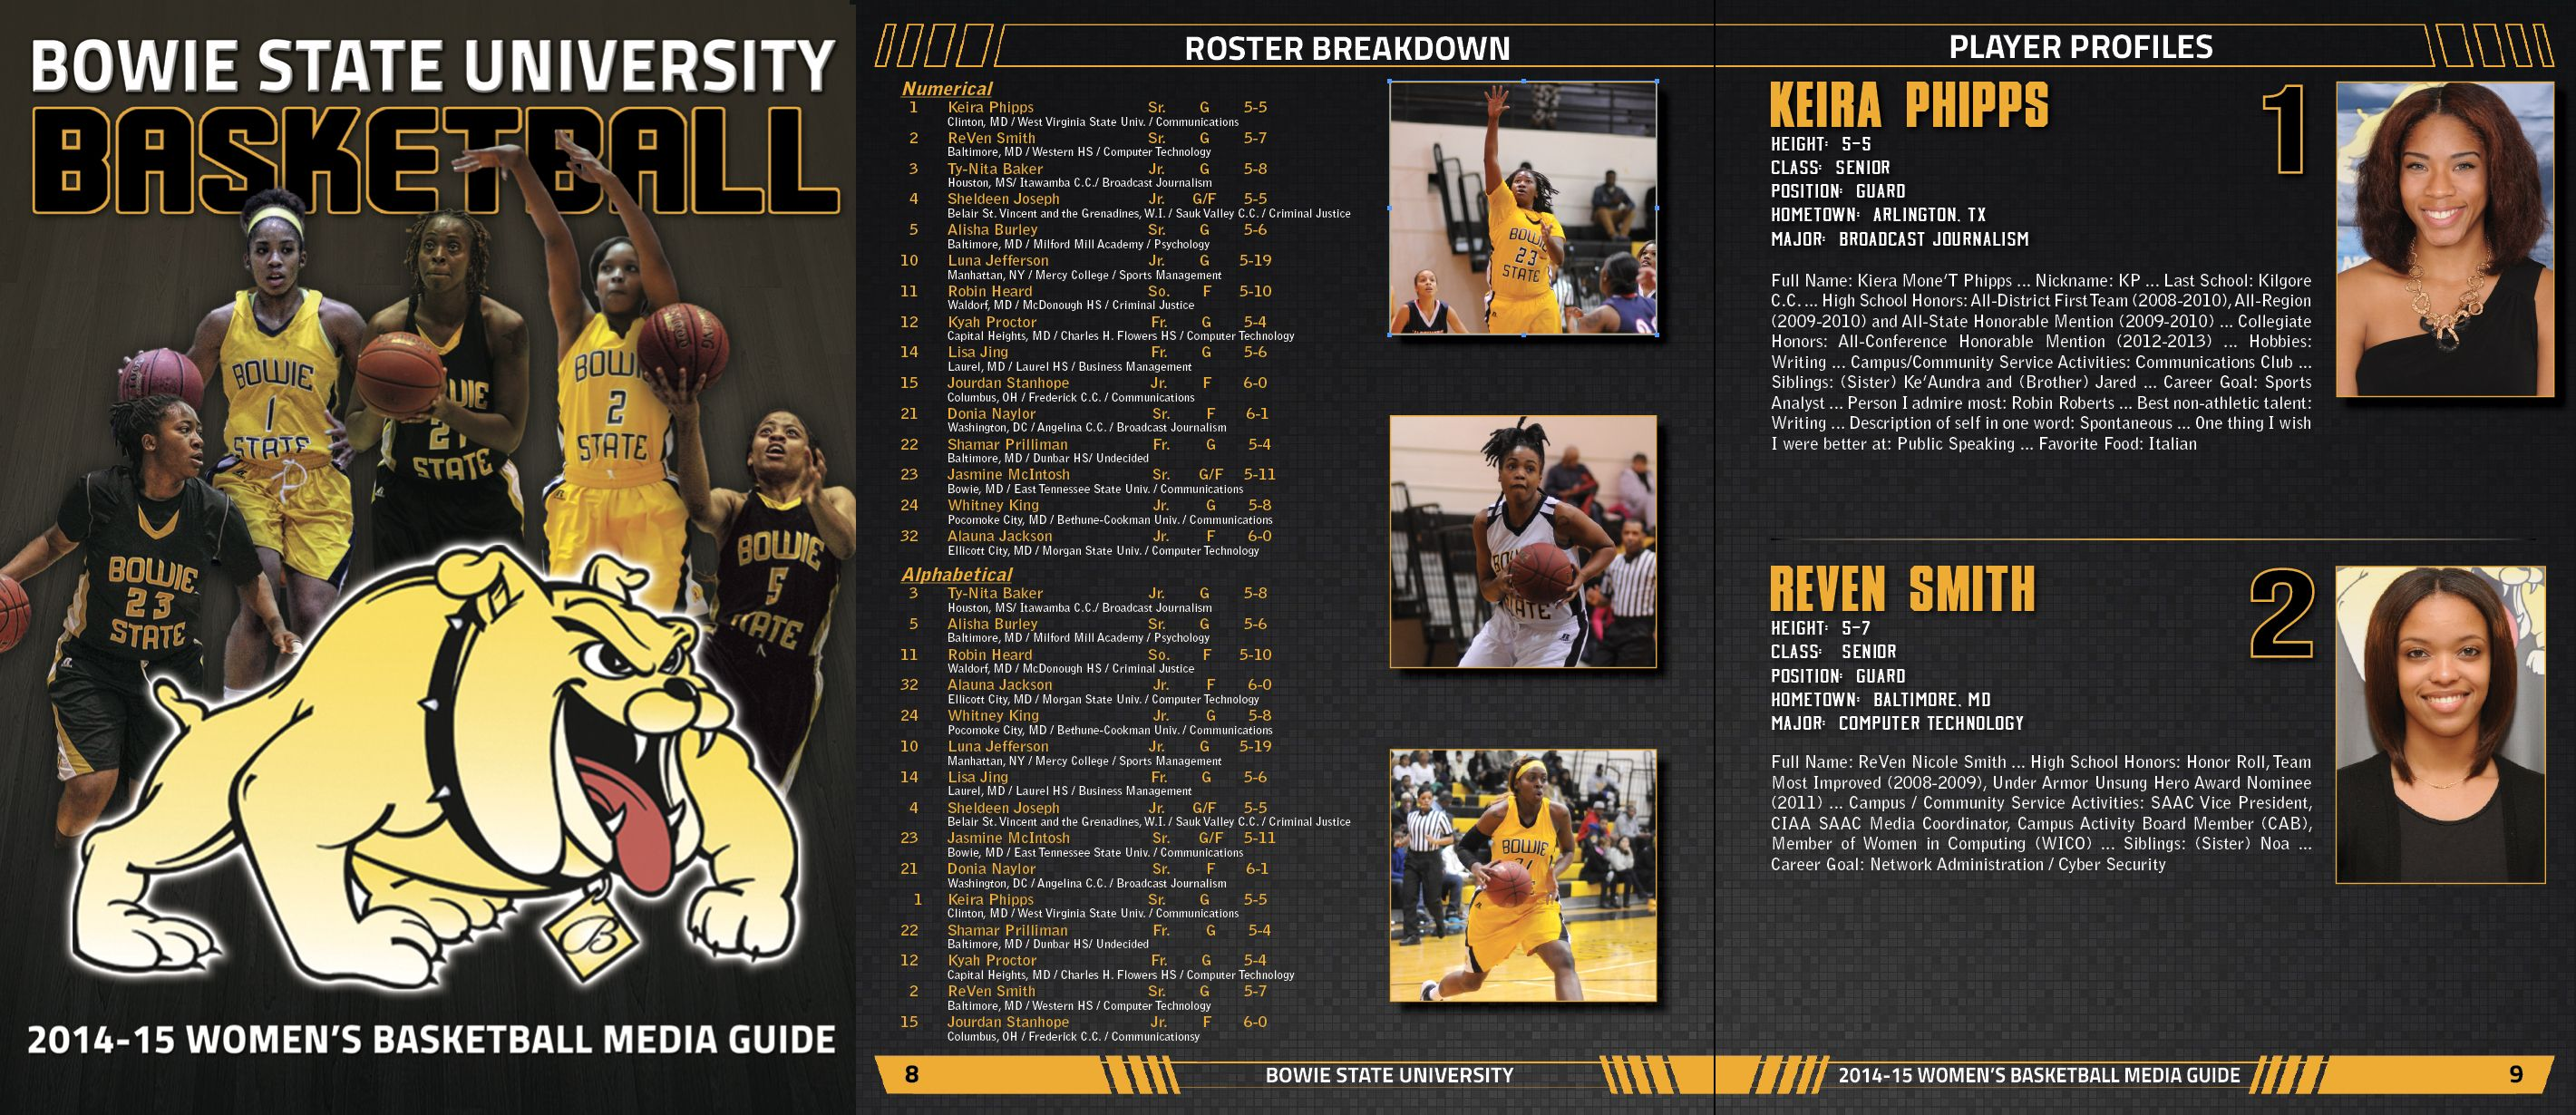 Bowie State Women's Basketball media guide online guide